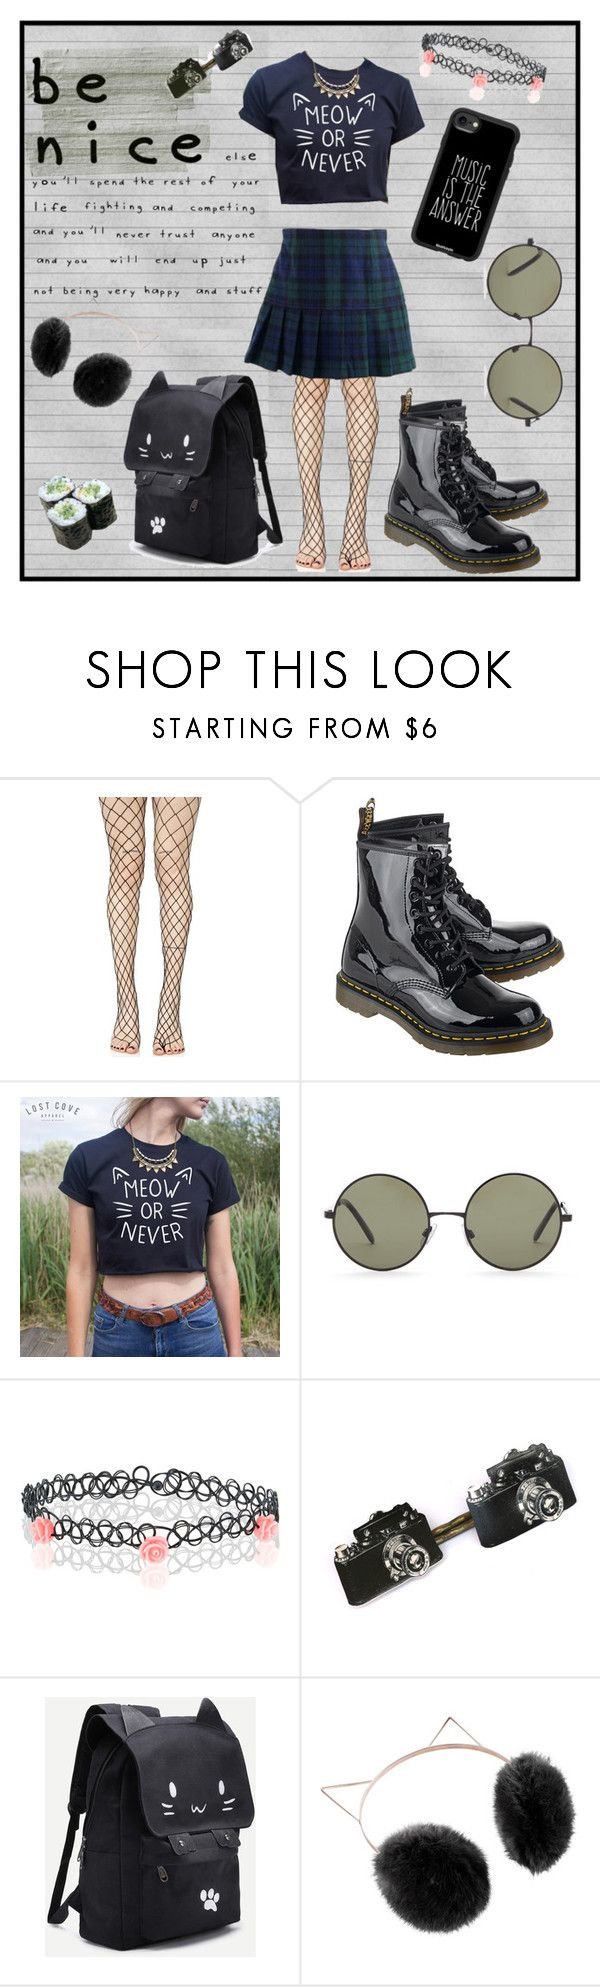 """be nice"" by faqinhell ❤ liked on Polyvore featuring Leg Avenue, Rachel Riley, Dr. Martens, Forever 21, Accessorize, LC Lauren Conrad, Casetify, men's fashion and menswear"